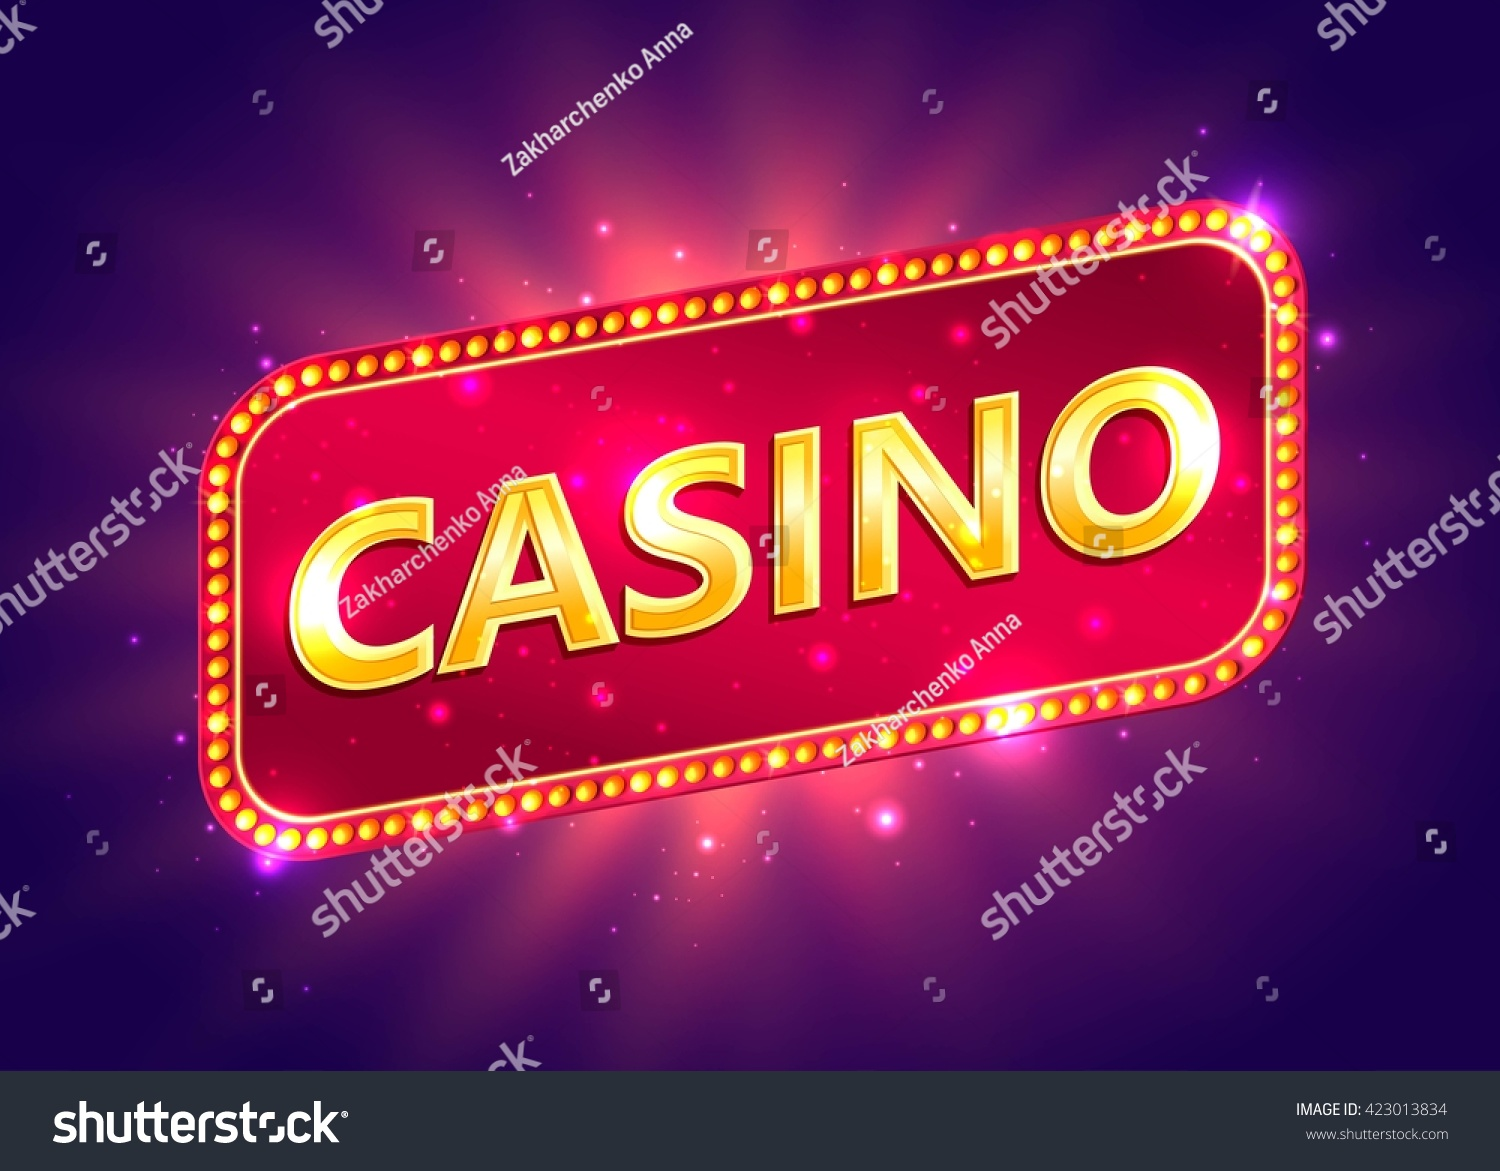 casino background vectors - photo #32